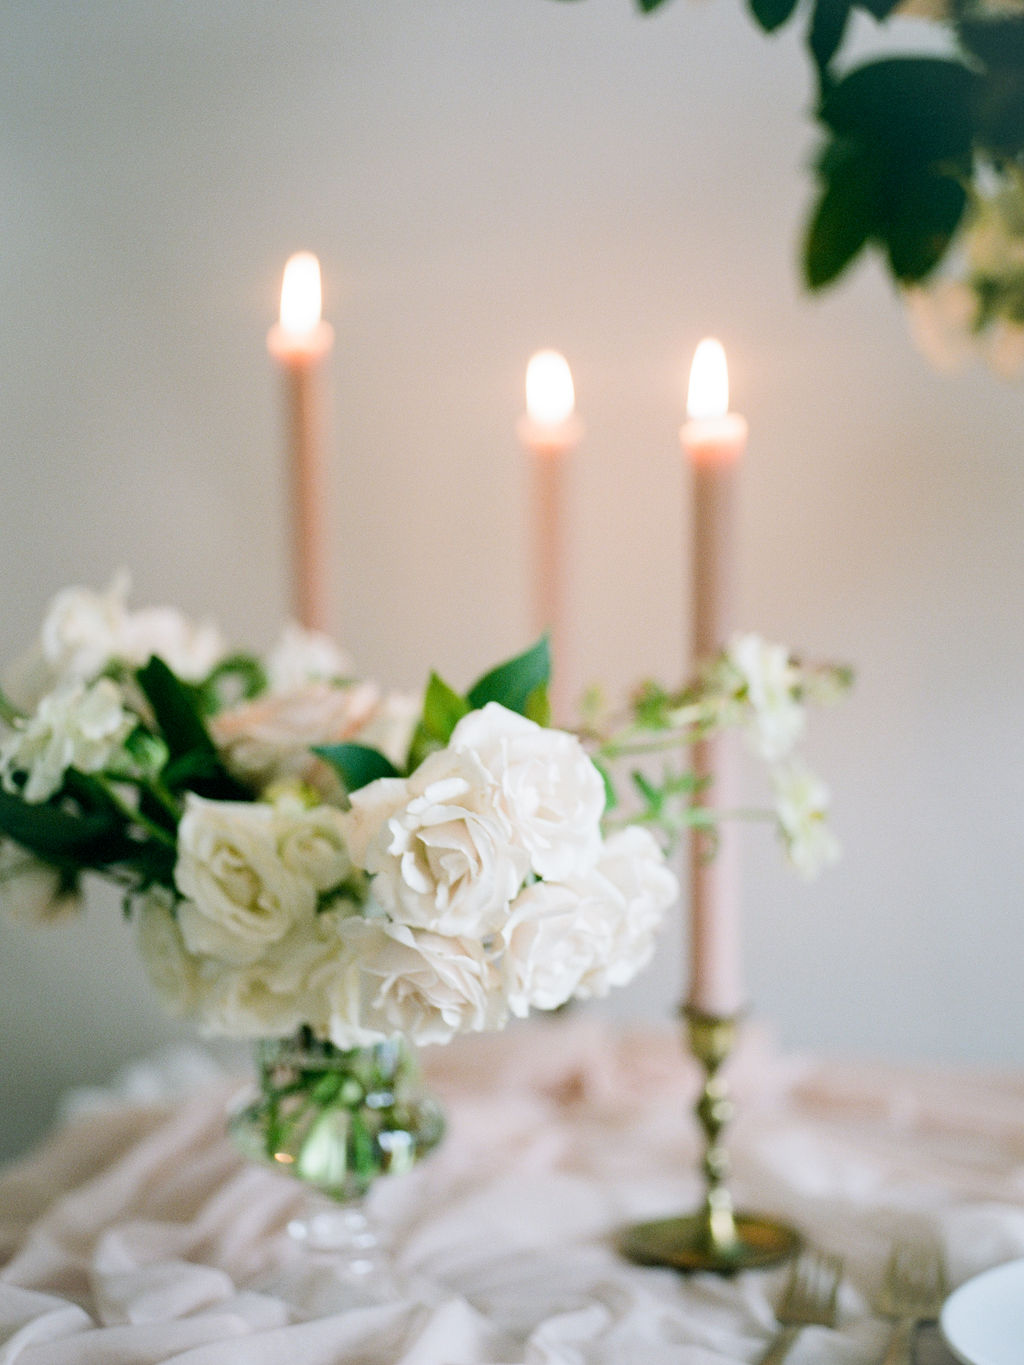 Maxit-Flower-Design-Christine-Gosch-Houston-Wedding-Flower-Taper-Candles.jpg